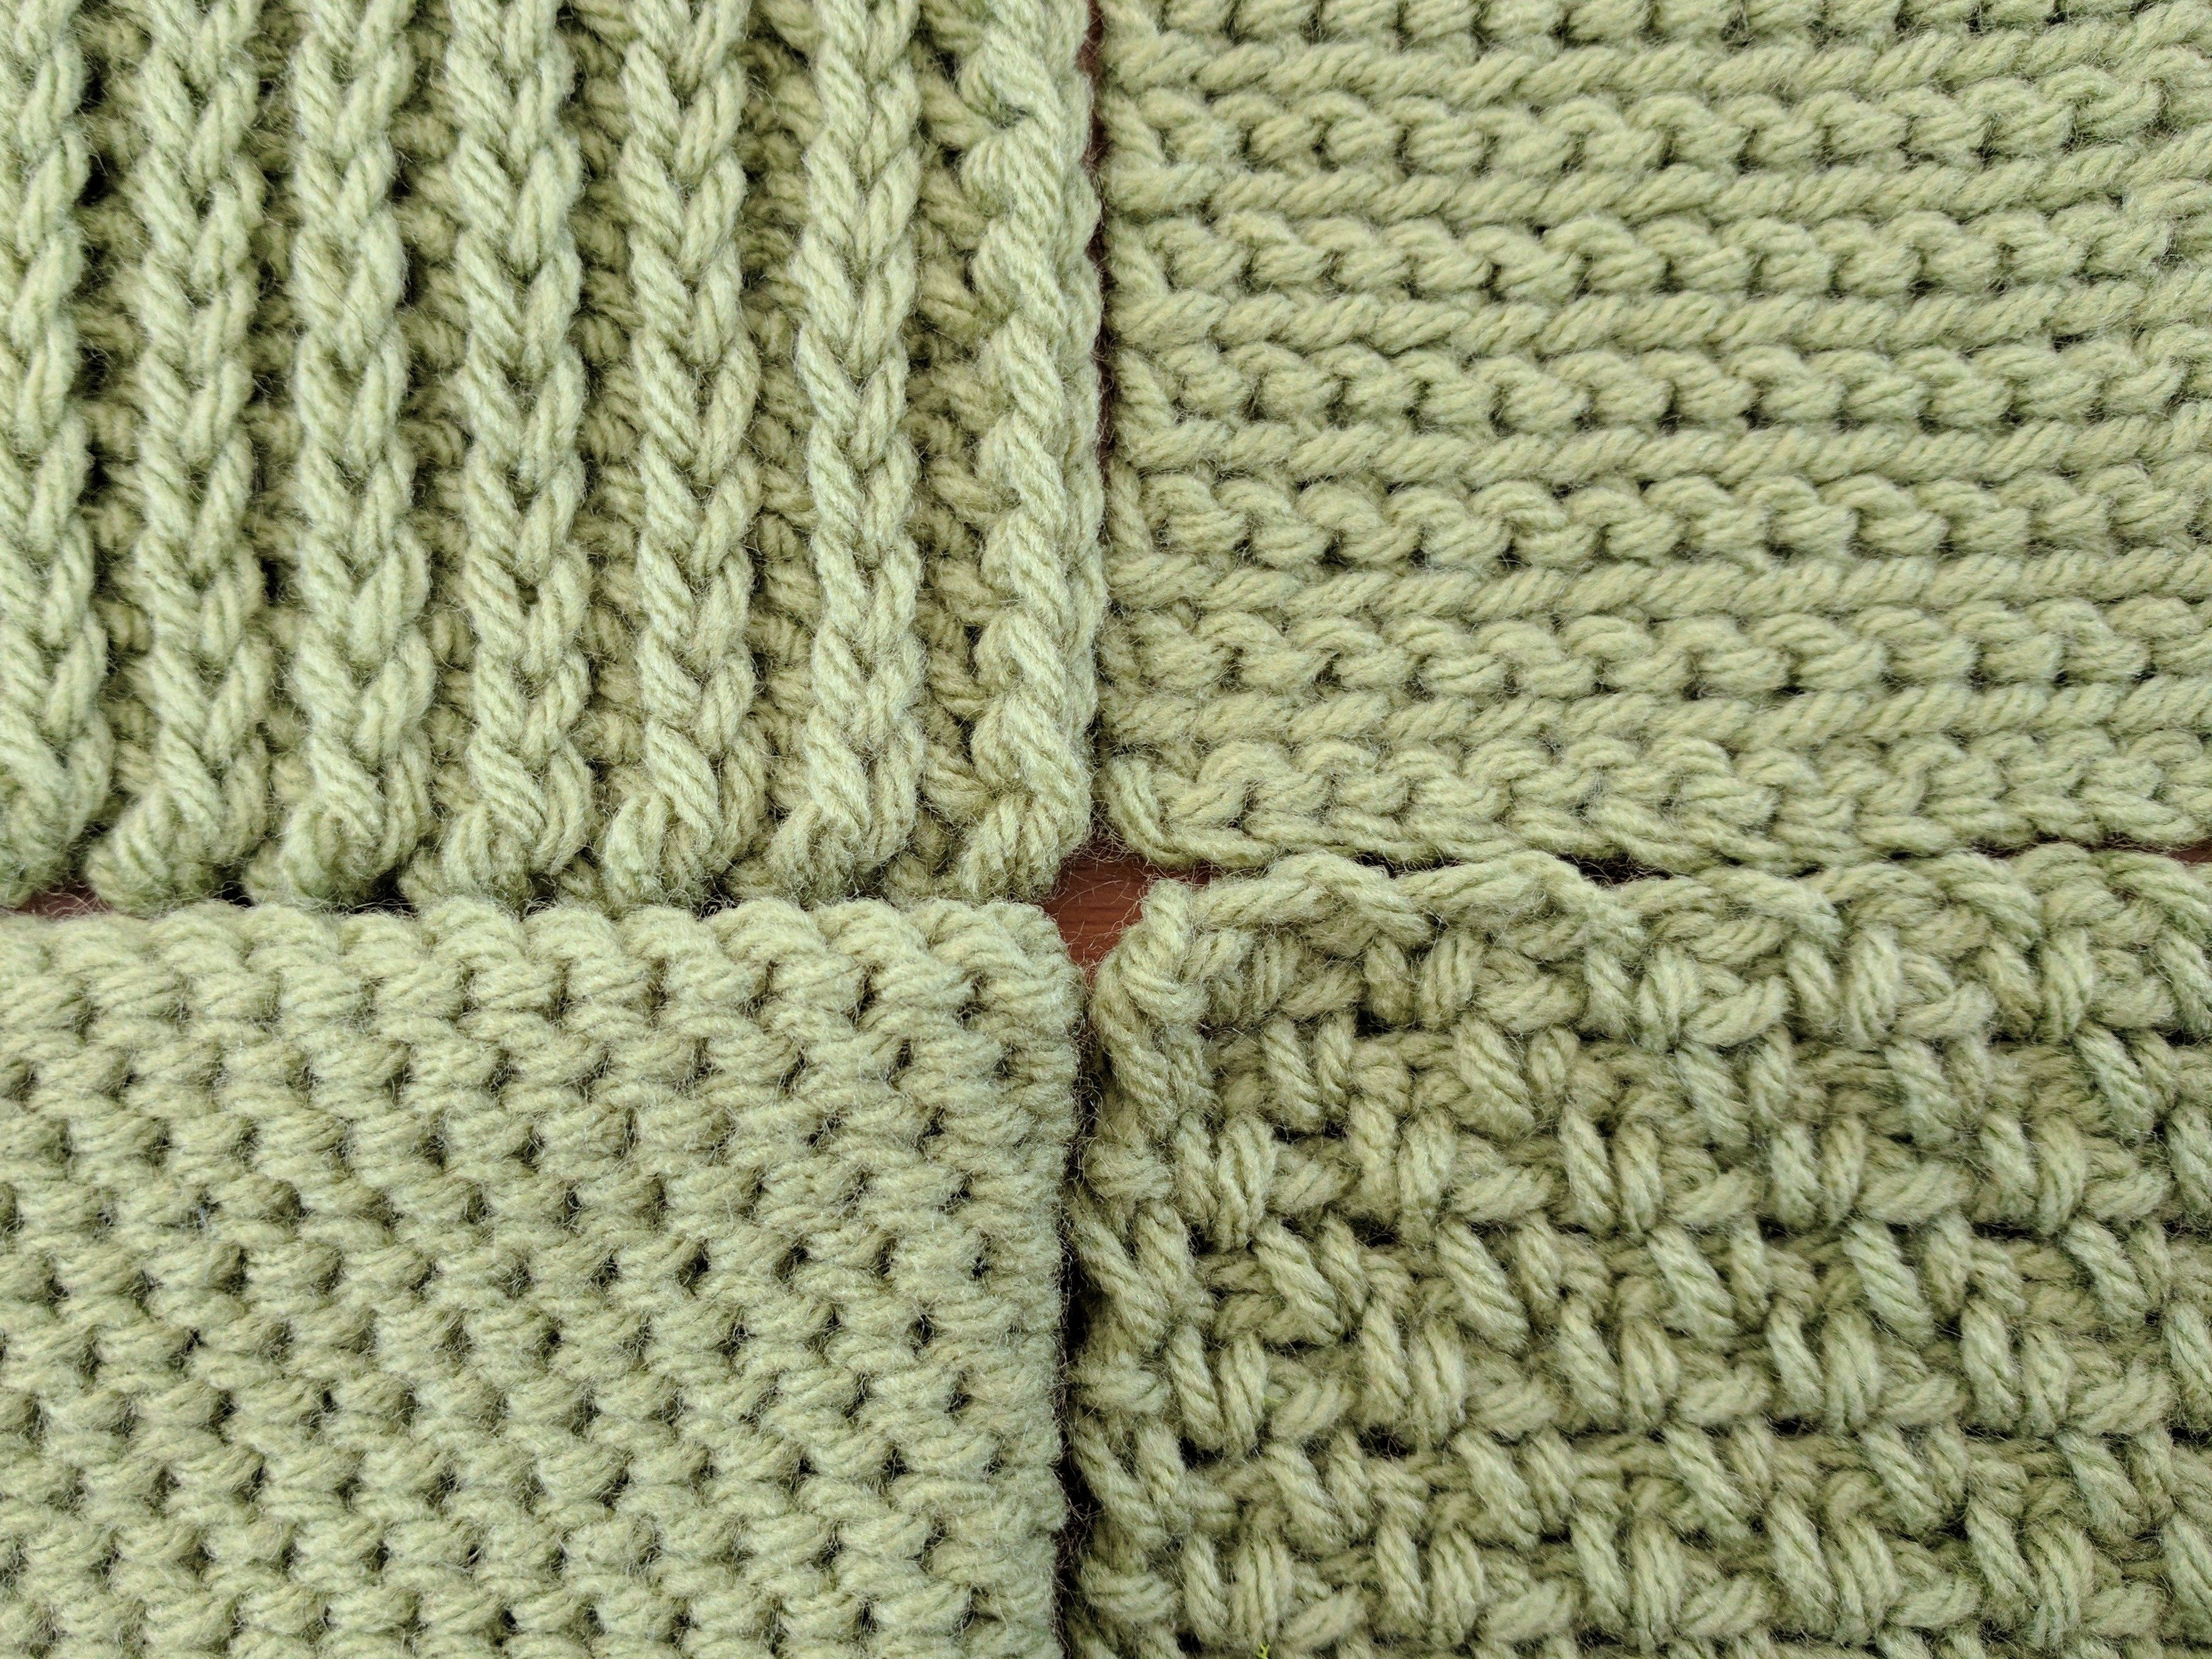 Crochet Stitch Pattern  A Quick Guide To Knit Look Crochet Stitches The Valley Mushrump